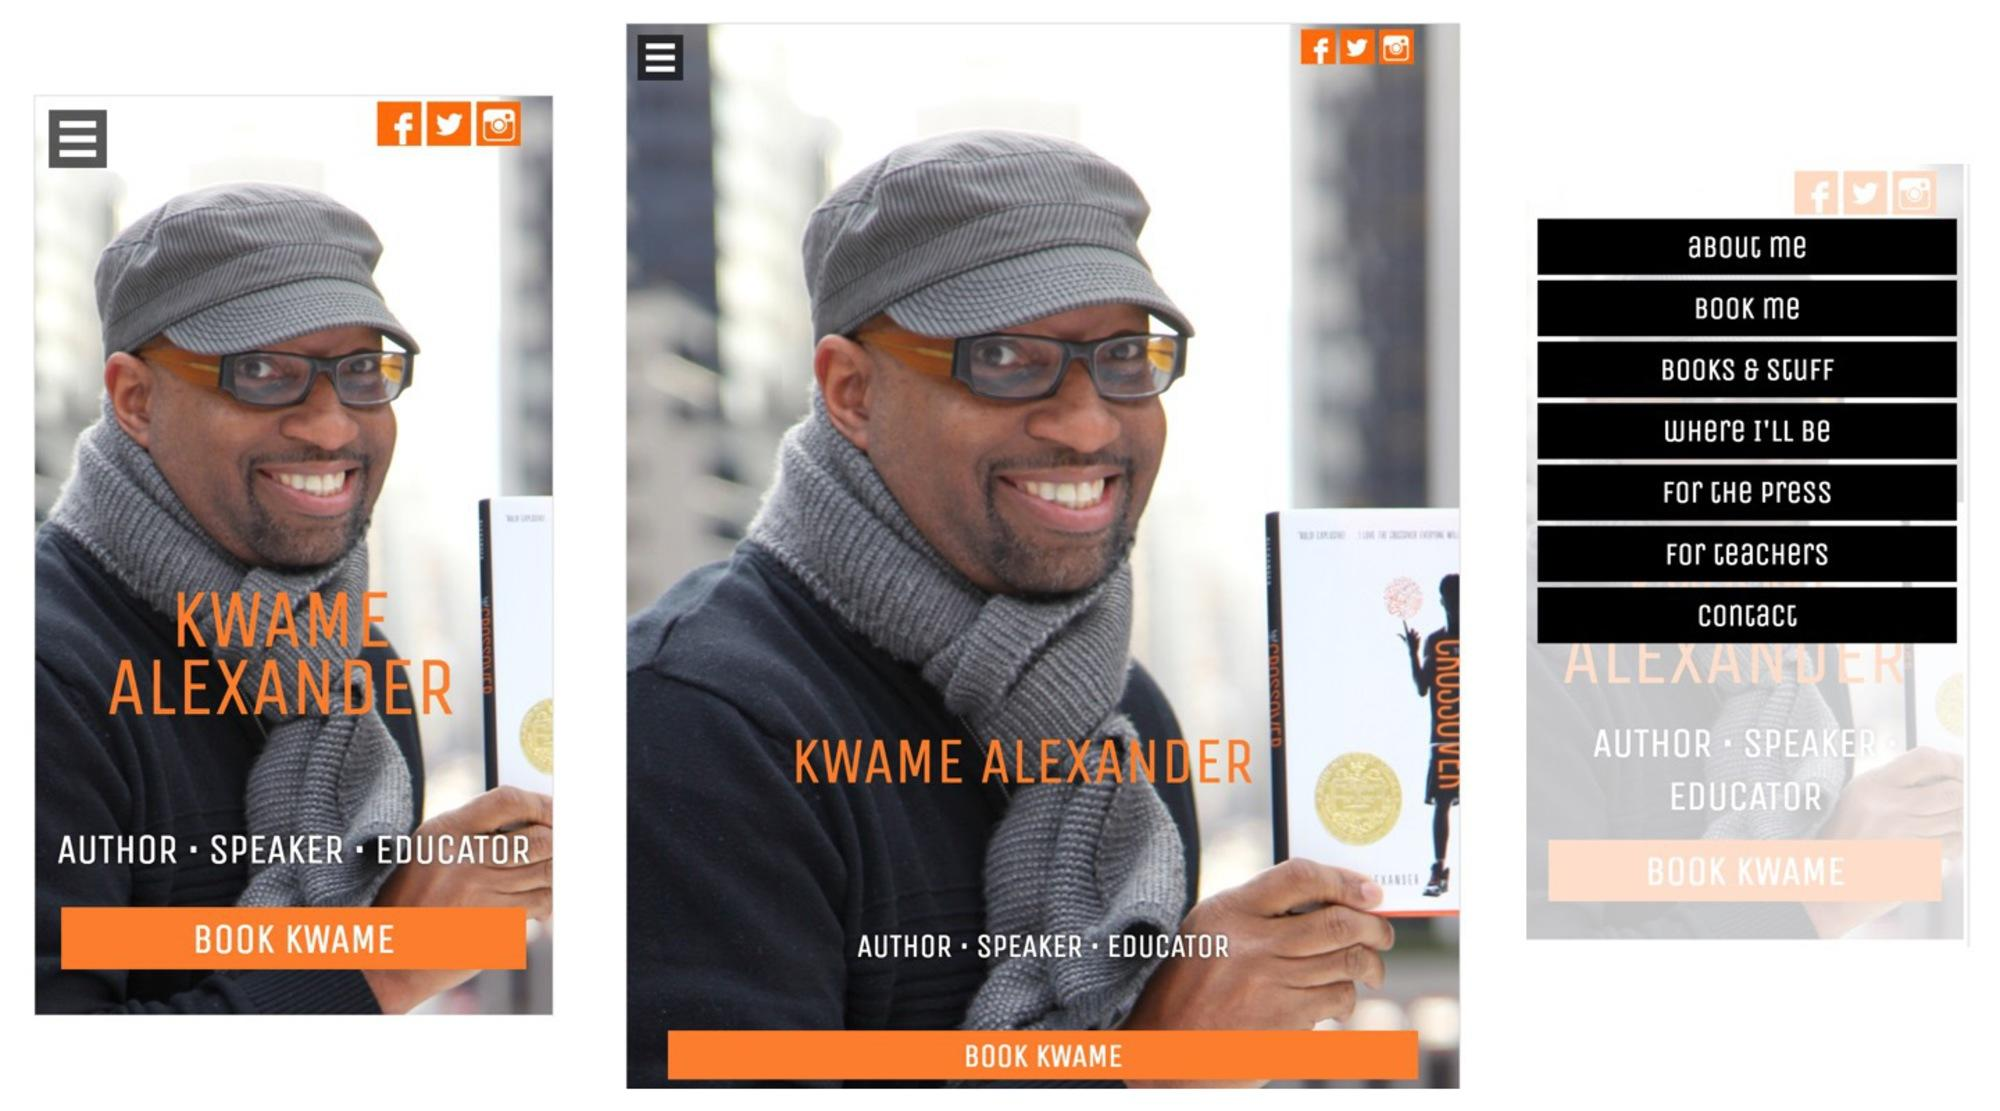 Kwame Alexander dot com Mobile and Tablet layouts